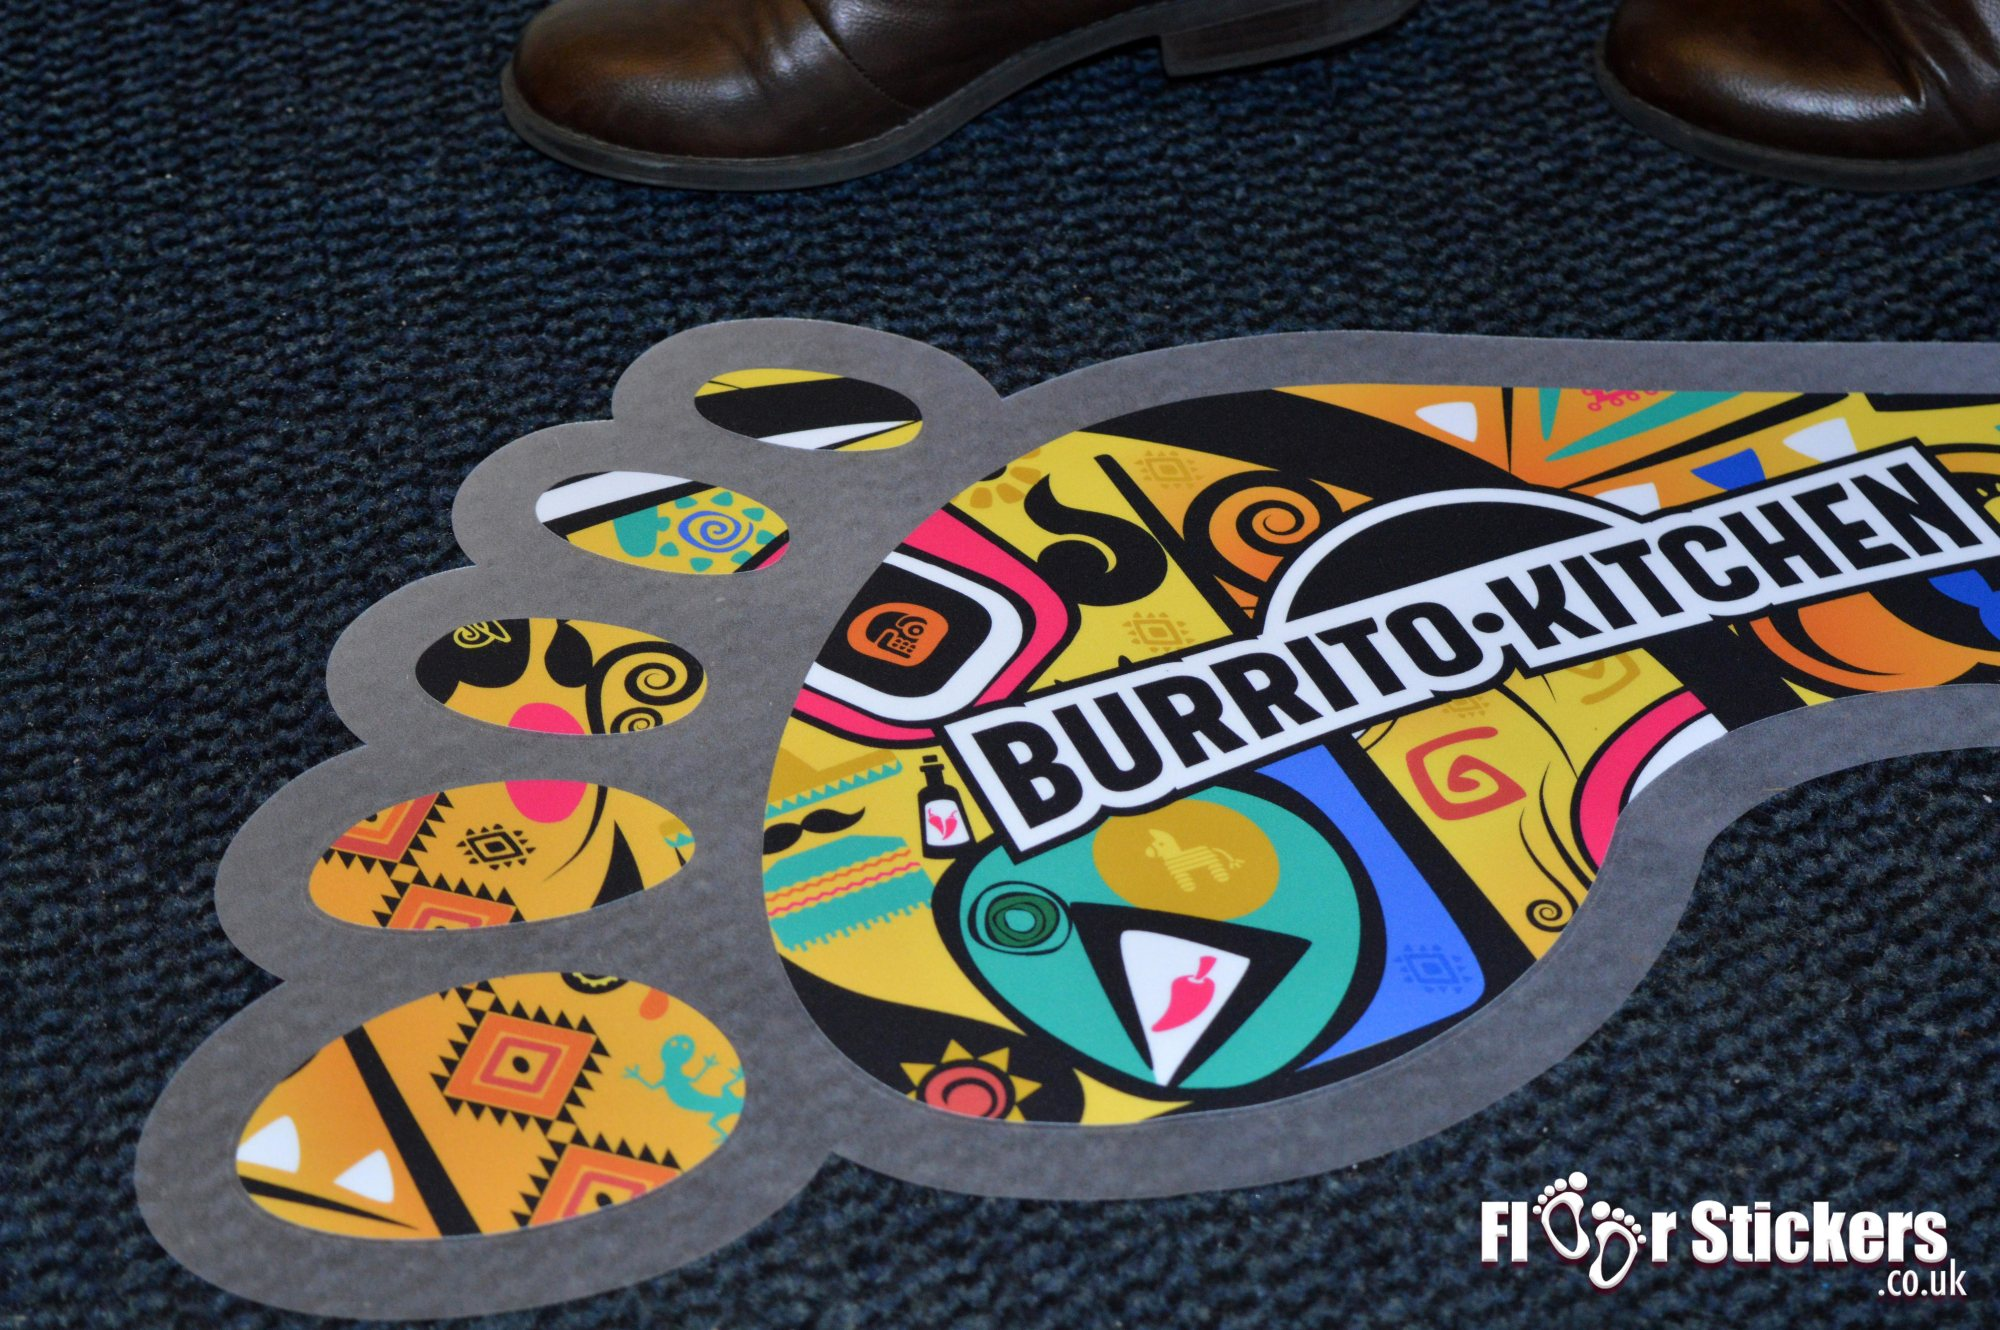 Burrito kitchen floor sticker